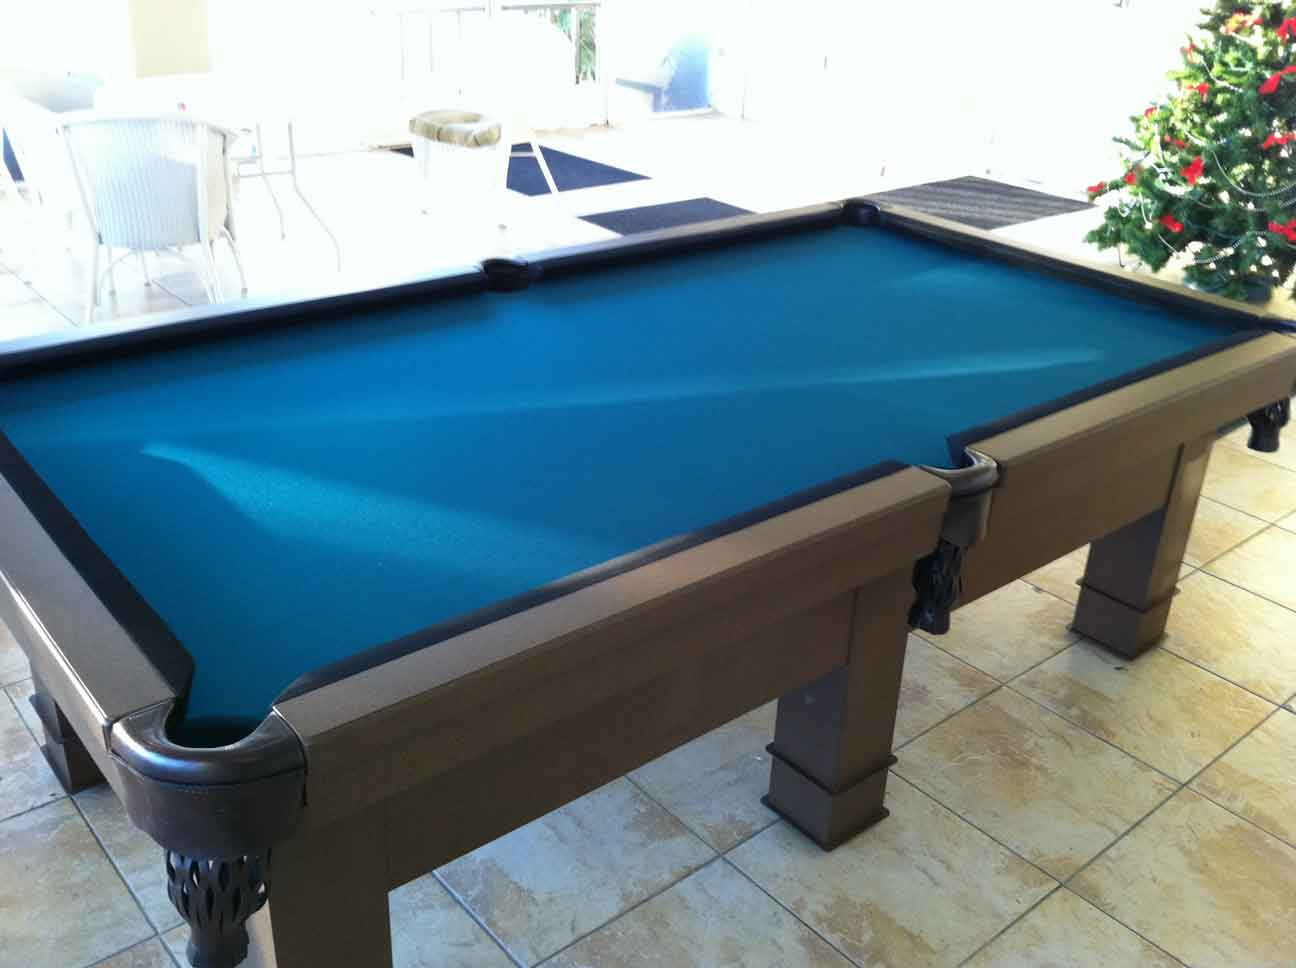 Orion custom outdoor pool table by R&R Outdoors All Weather Billiards